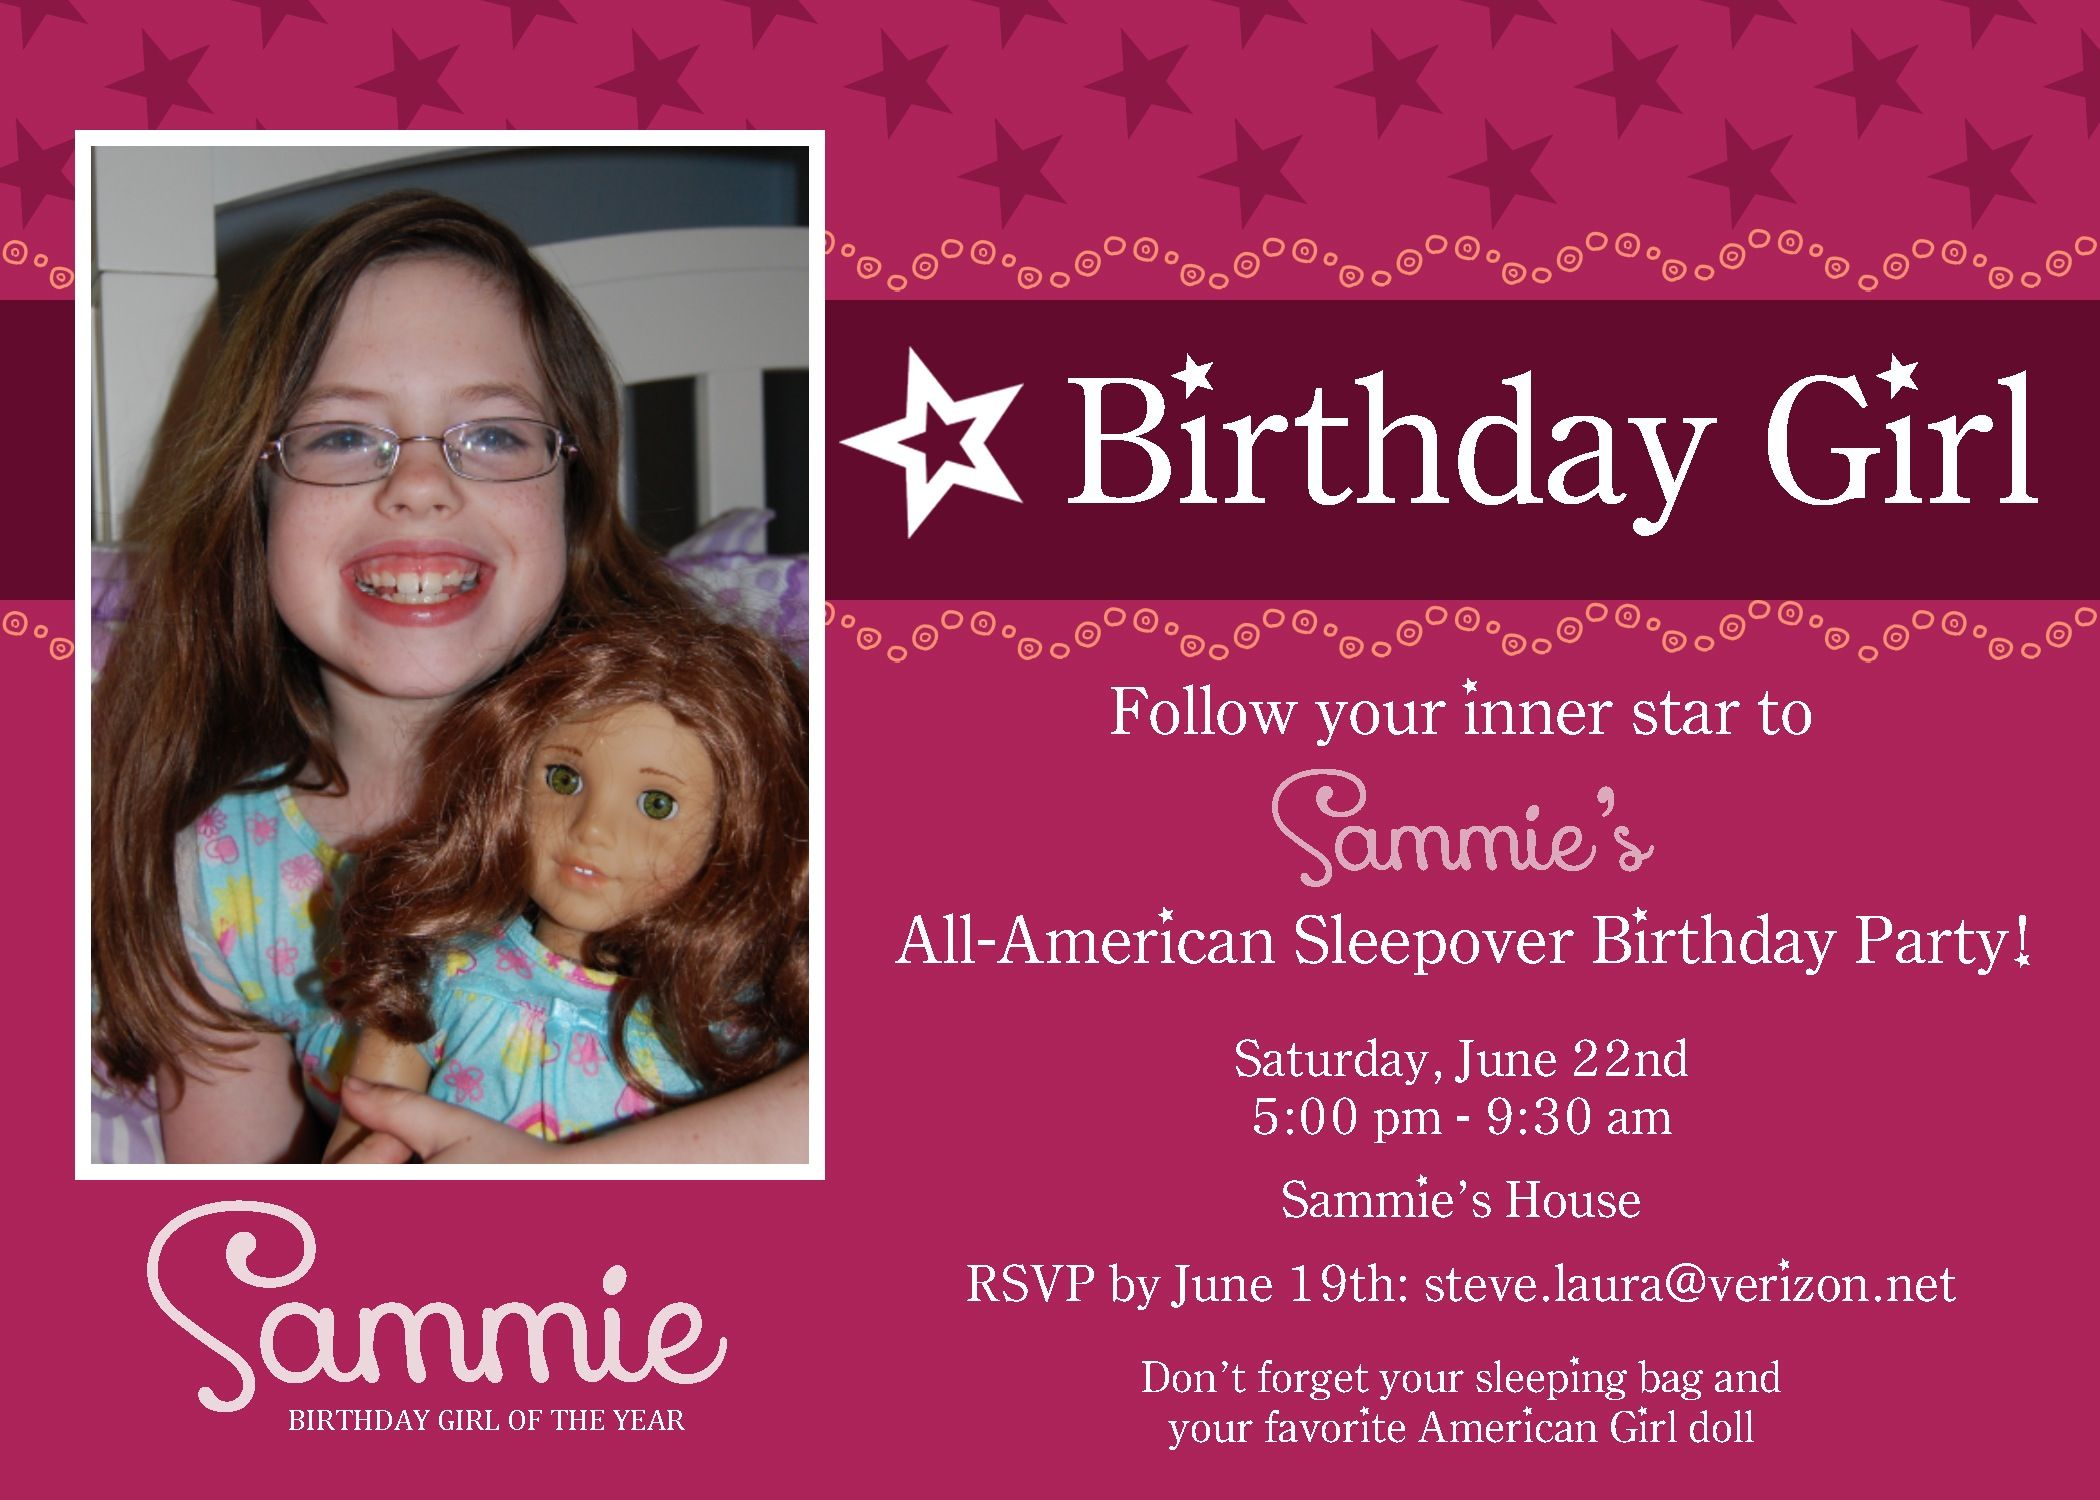 american girl party invitation cute to copy cat in red..in some, Party invitations